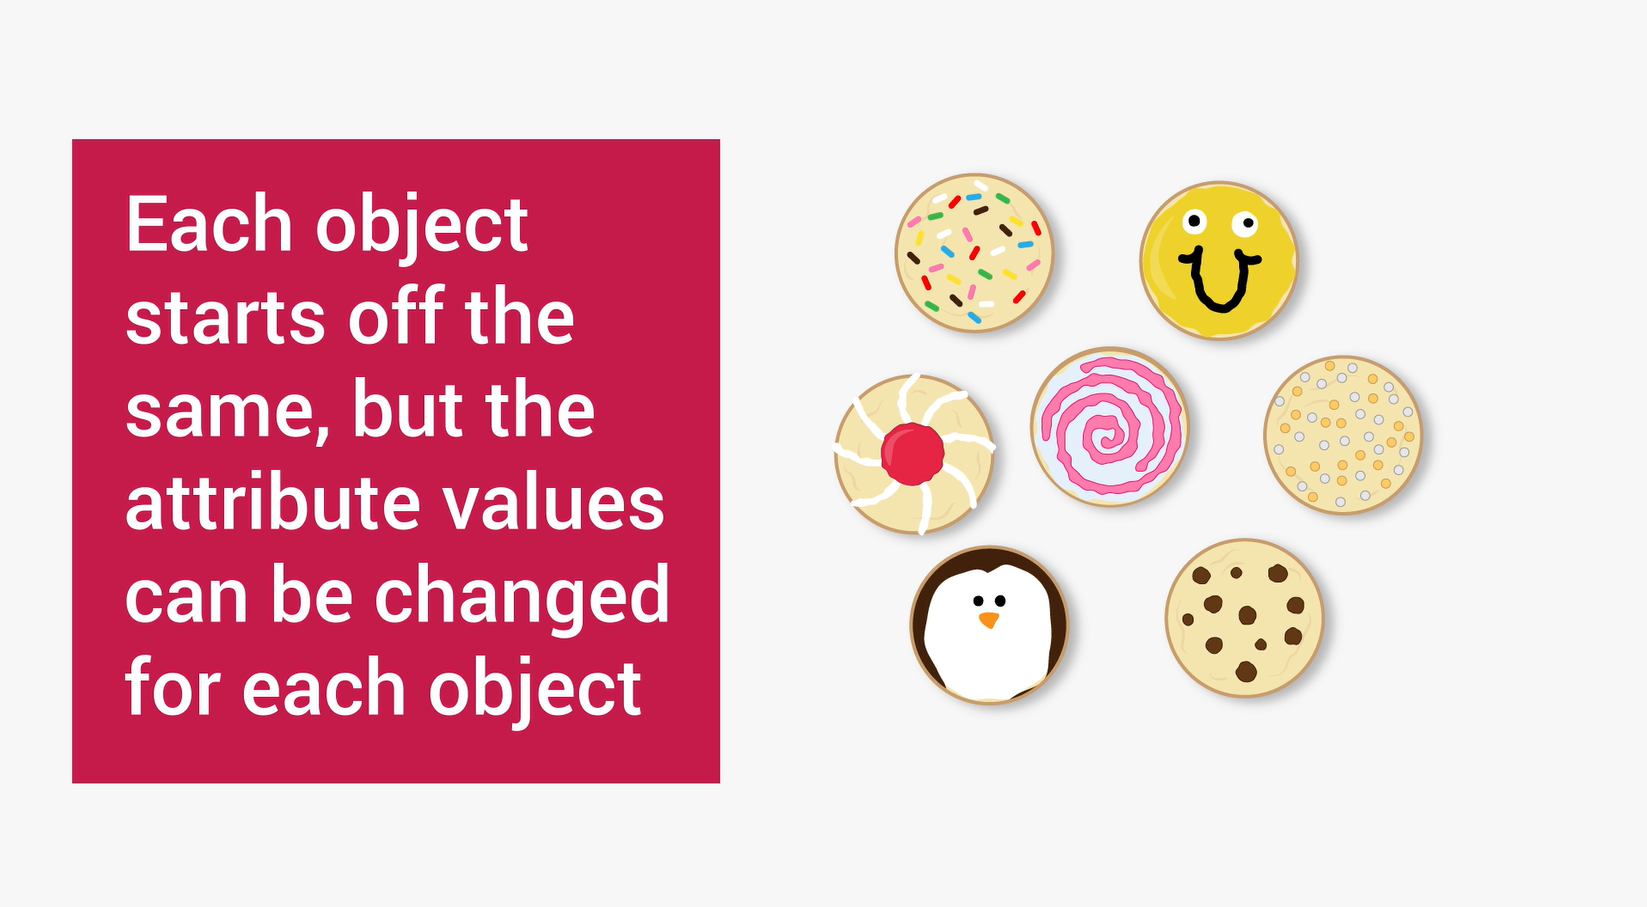 an illustration of cookies all with different designs